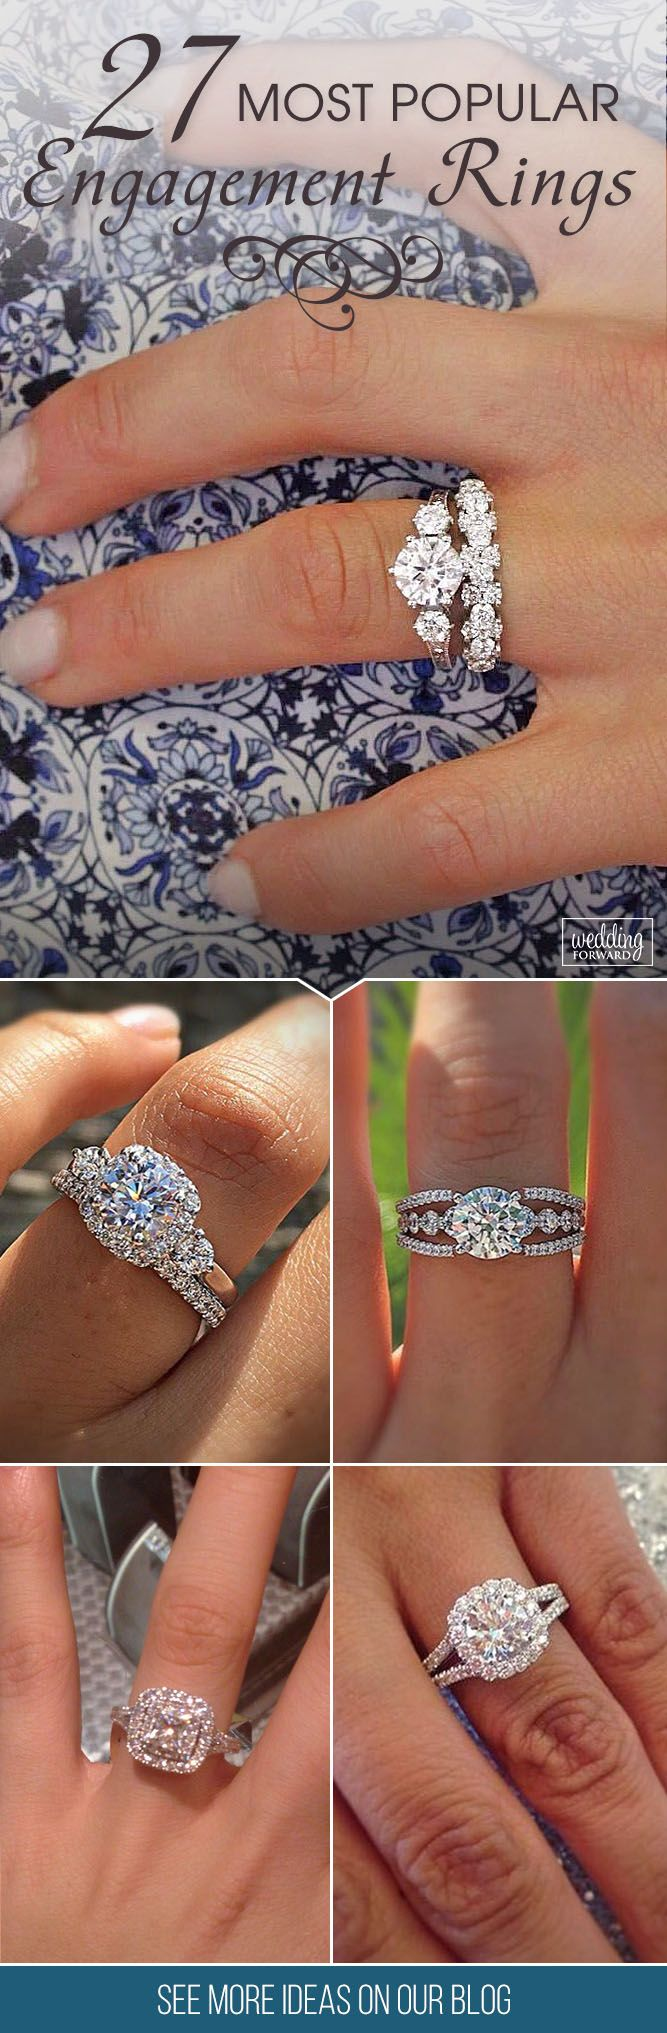 27 Most Popular Engagement Rings For Women ❤ Can't find the right engagement ring for your loved - or yourself? And for inspiration look at our collection of the most popular engagement rings! See more: http://www.weddingforward.com/engagement-rings-for-women/ #wedding #engagement #rings #women